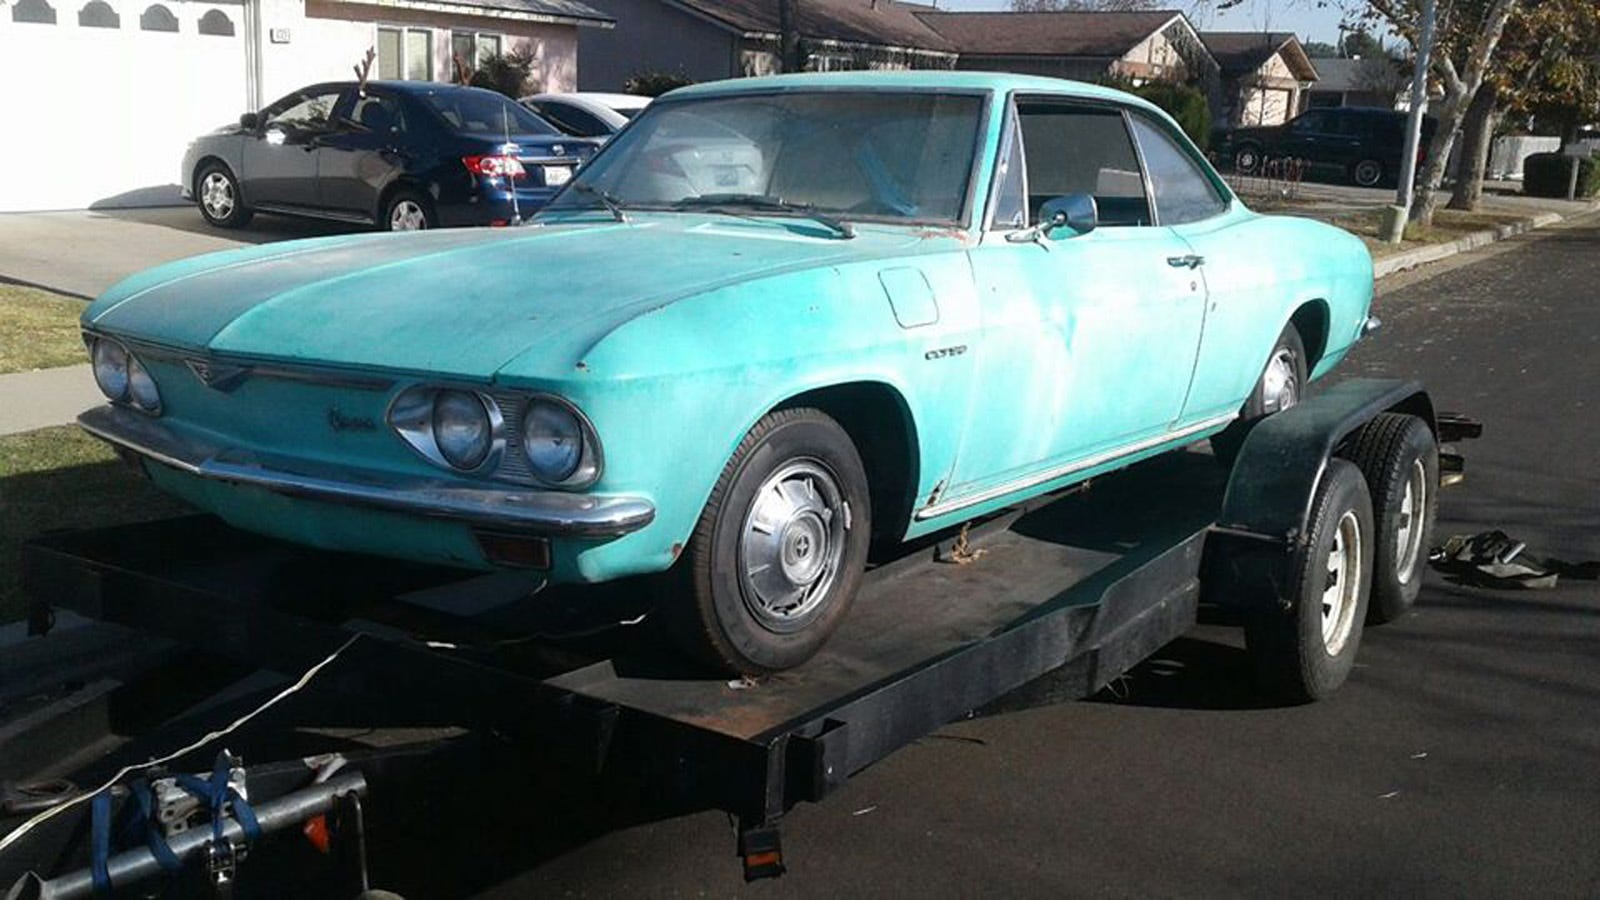 All Chevy chevy corvair monza : Chevrolet corvair News, Videos, Reviews and Gossip - Jalopnik